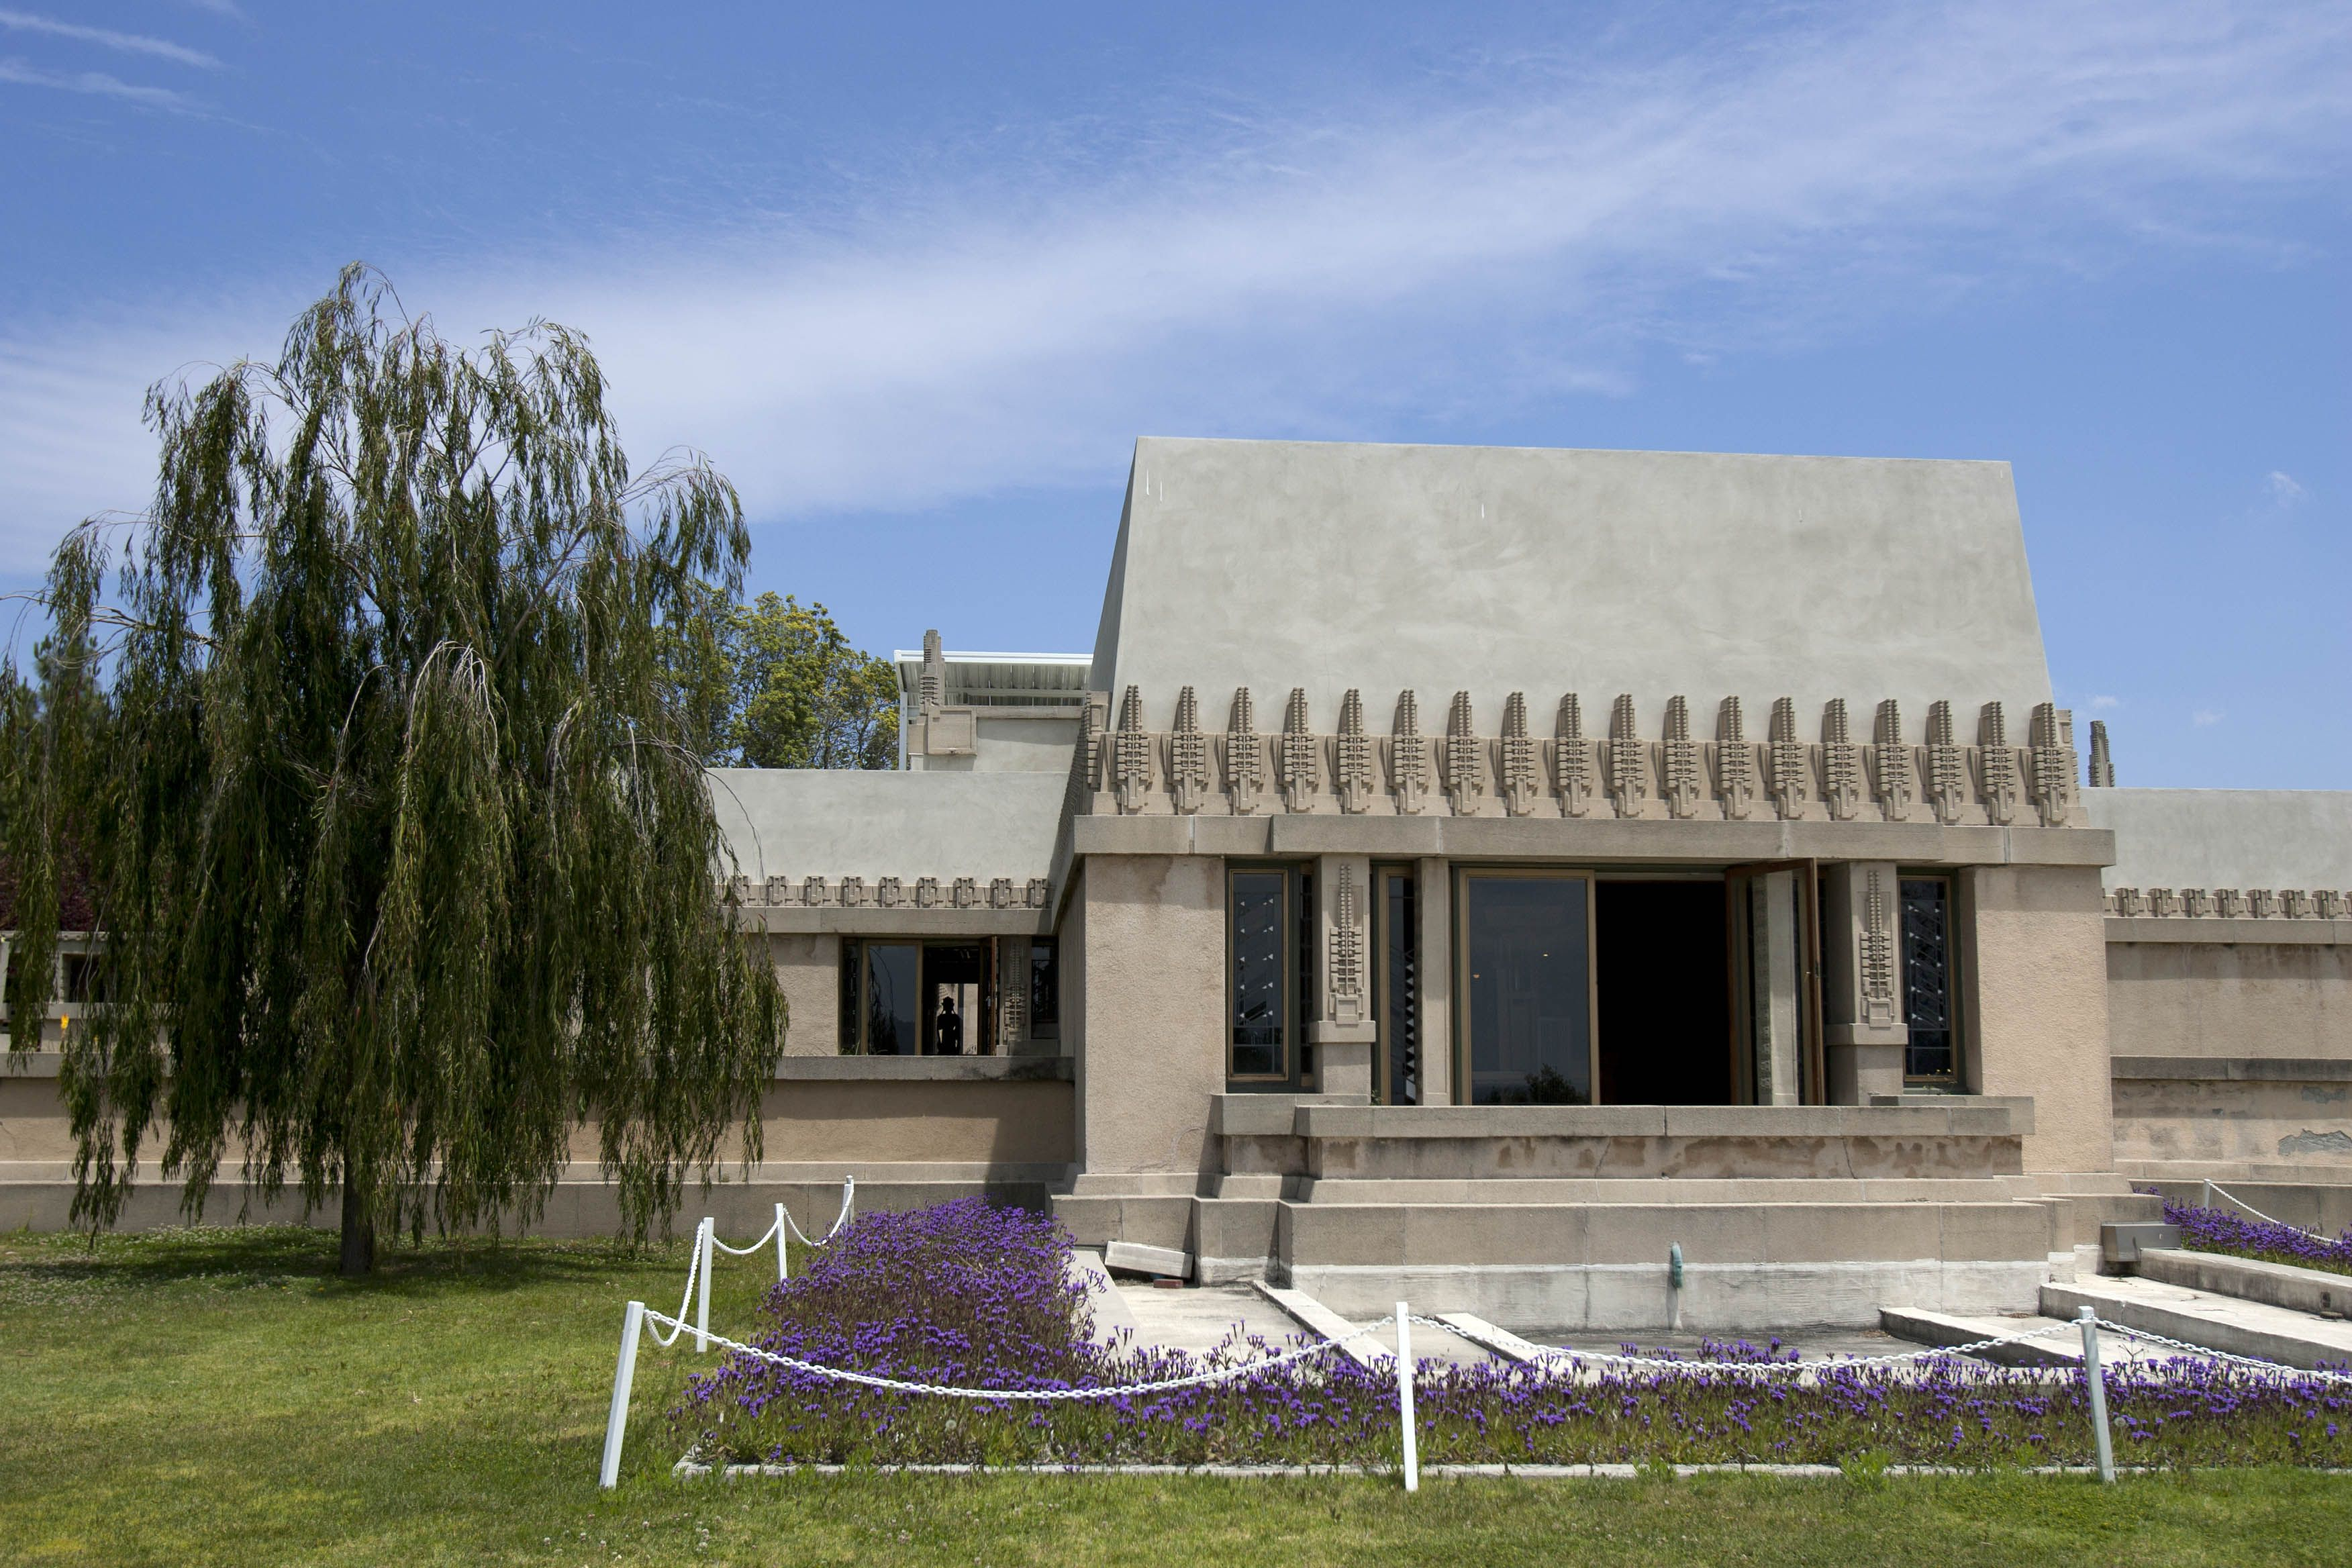 The 1921 Hollyhock House exterior, designed by Frank Lloyd Wright